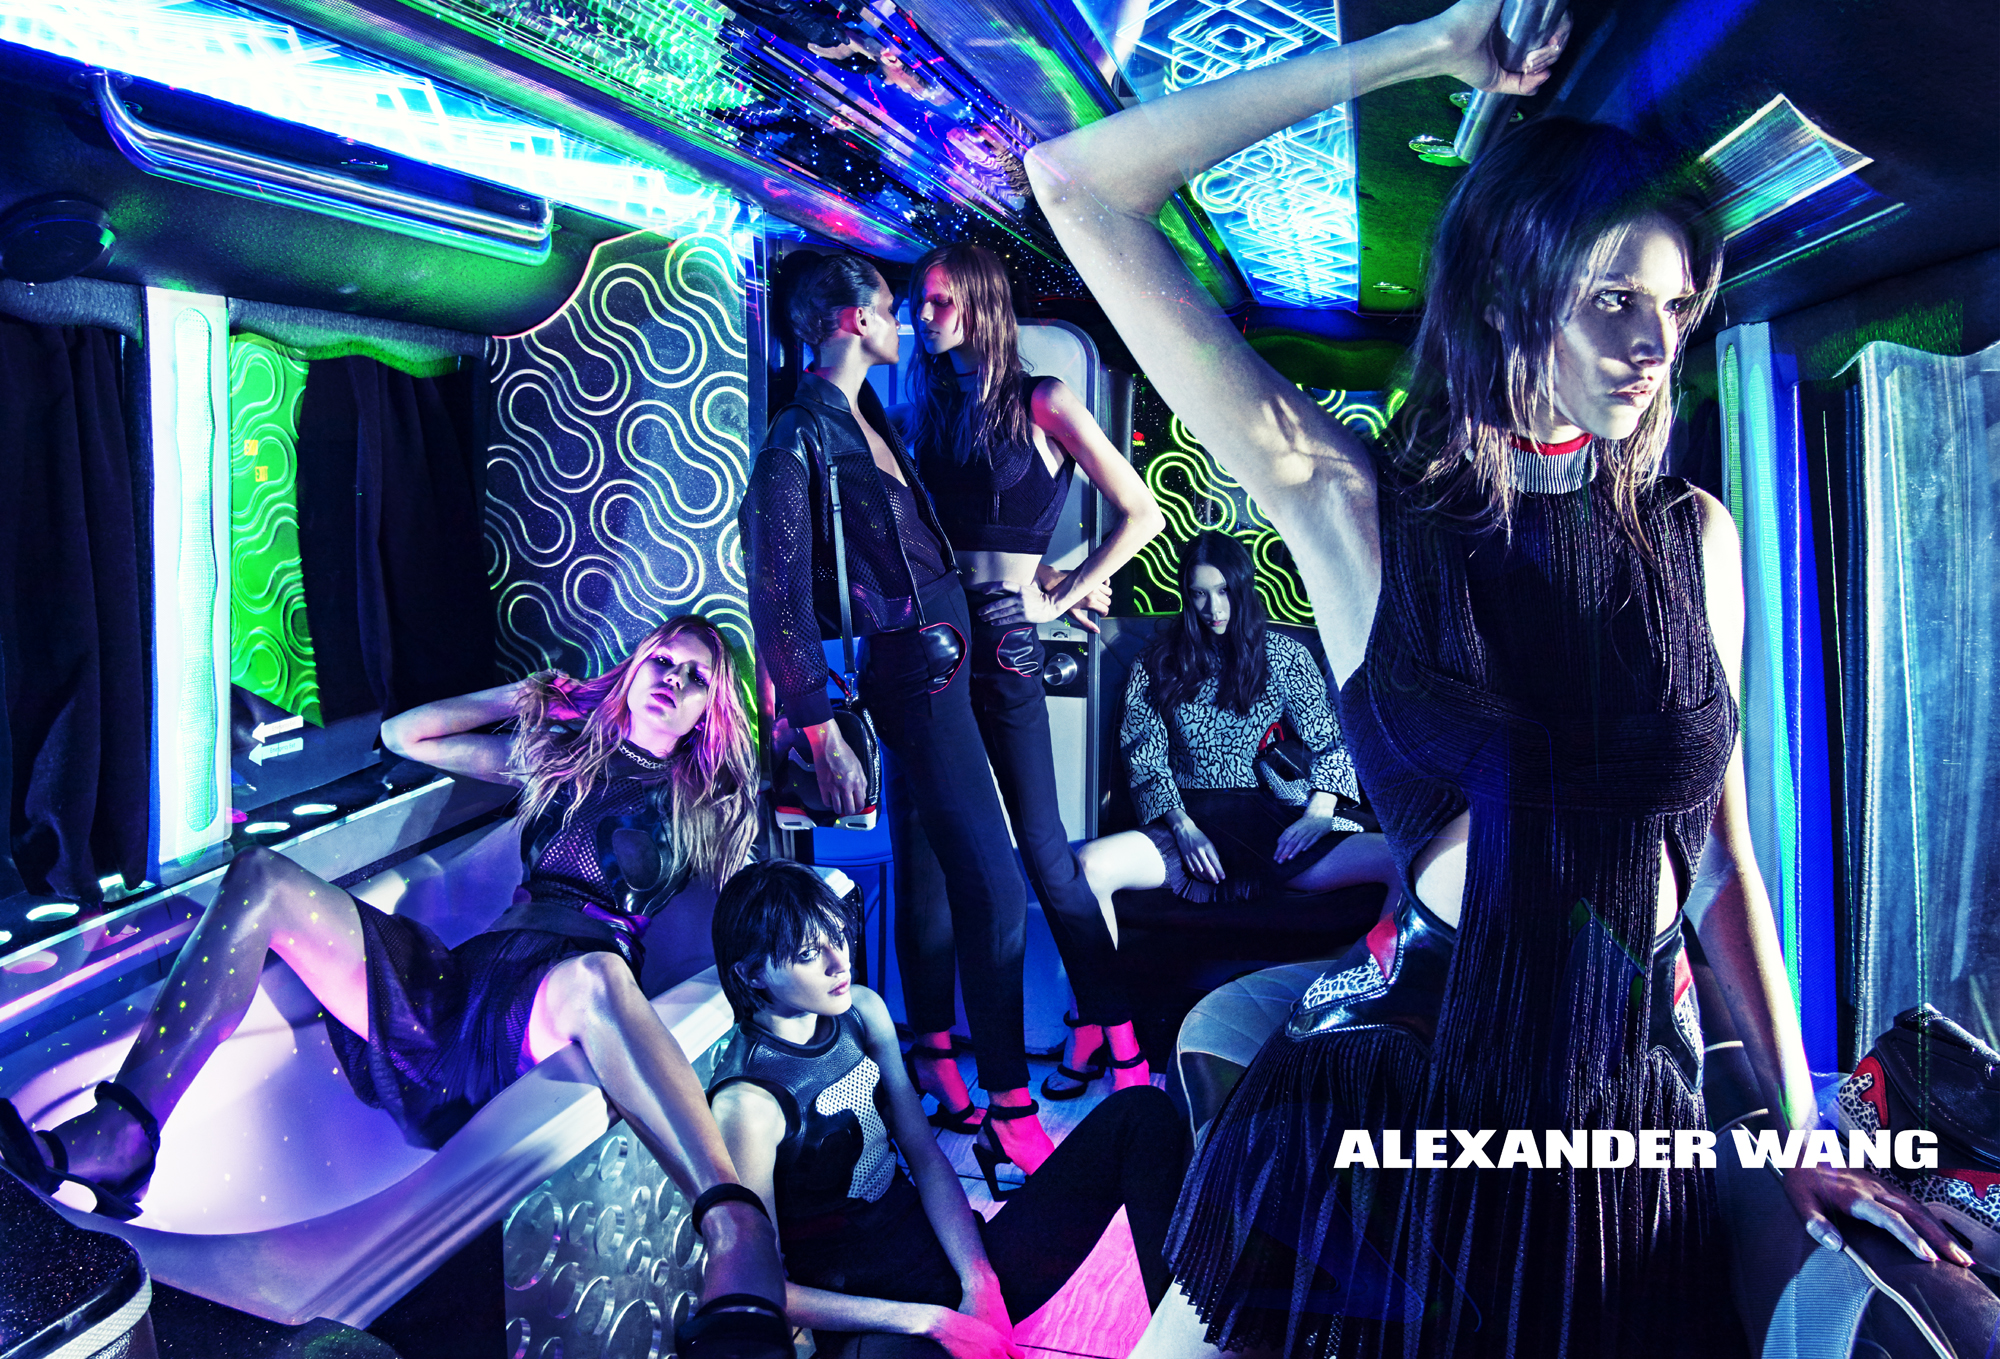 alexander-wang-spring-2015-ad-campaign-the-impression-03